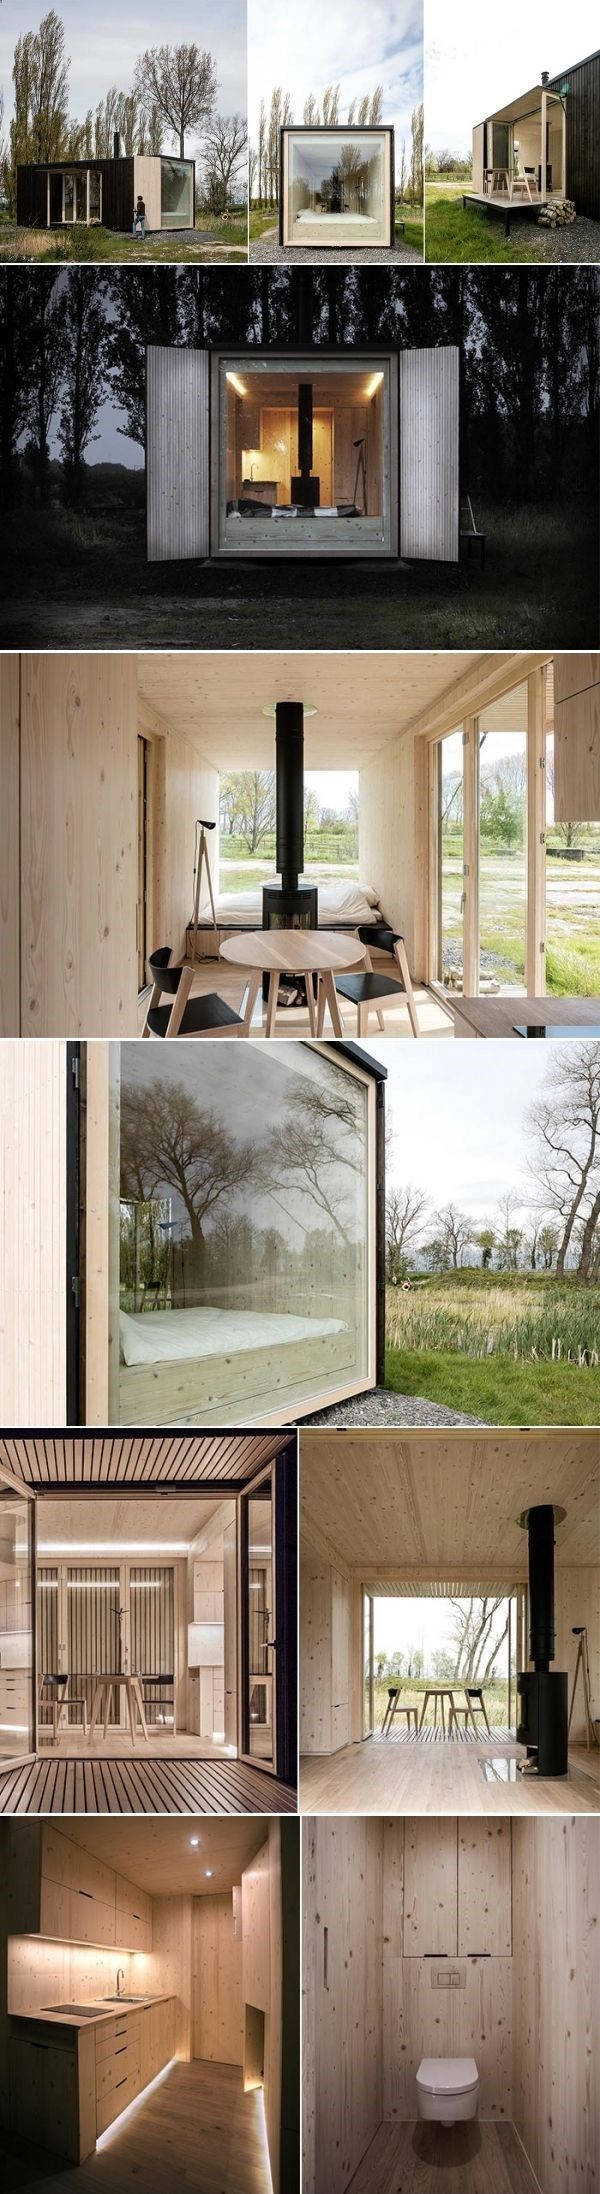 Container House Ark Shelter Prefabricated Cabins